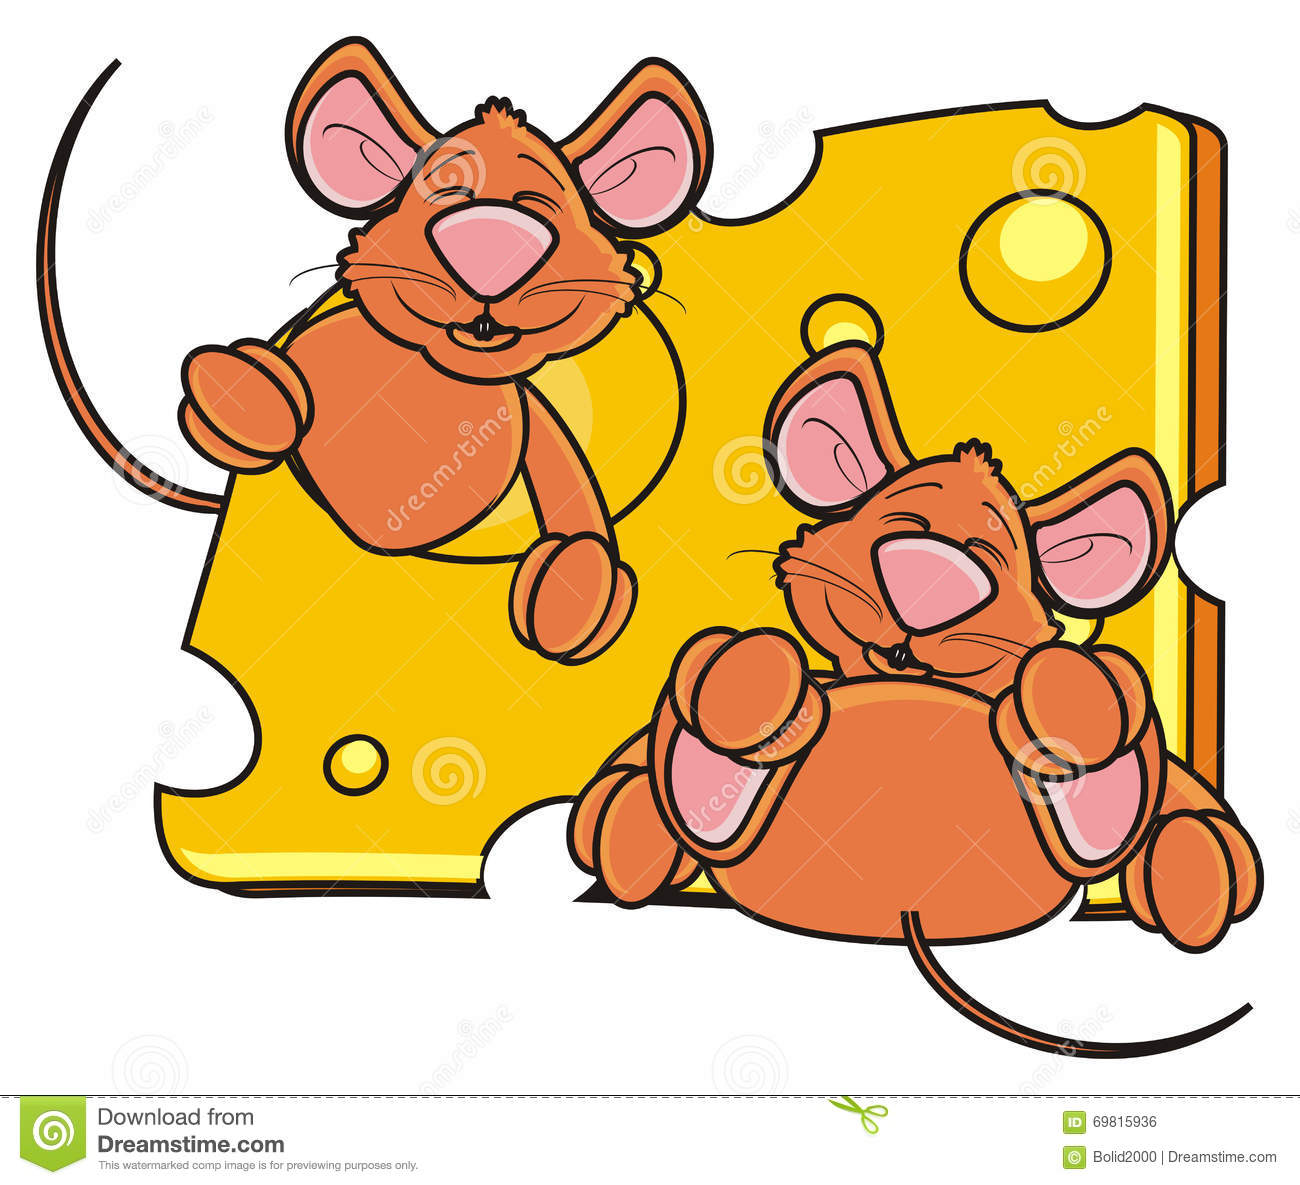 701 Mice free clipart.